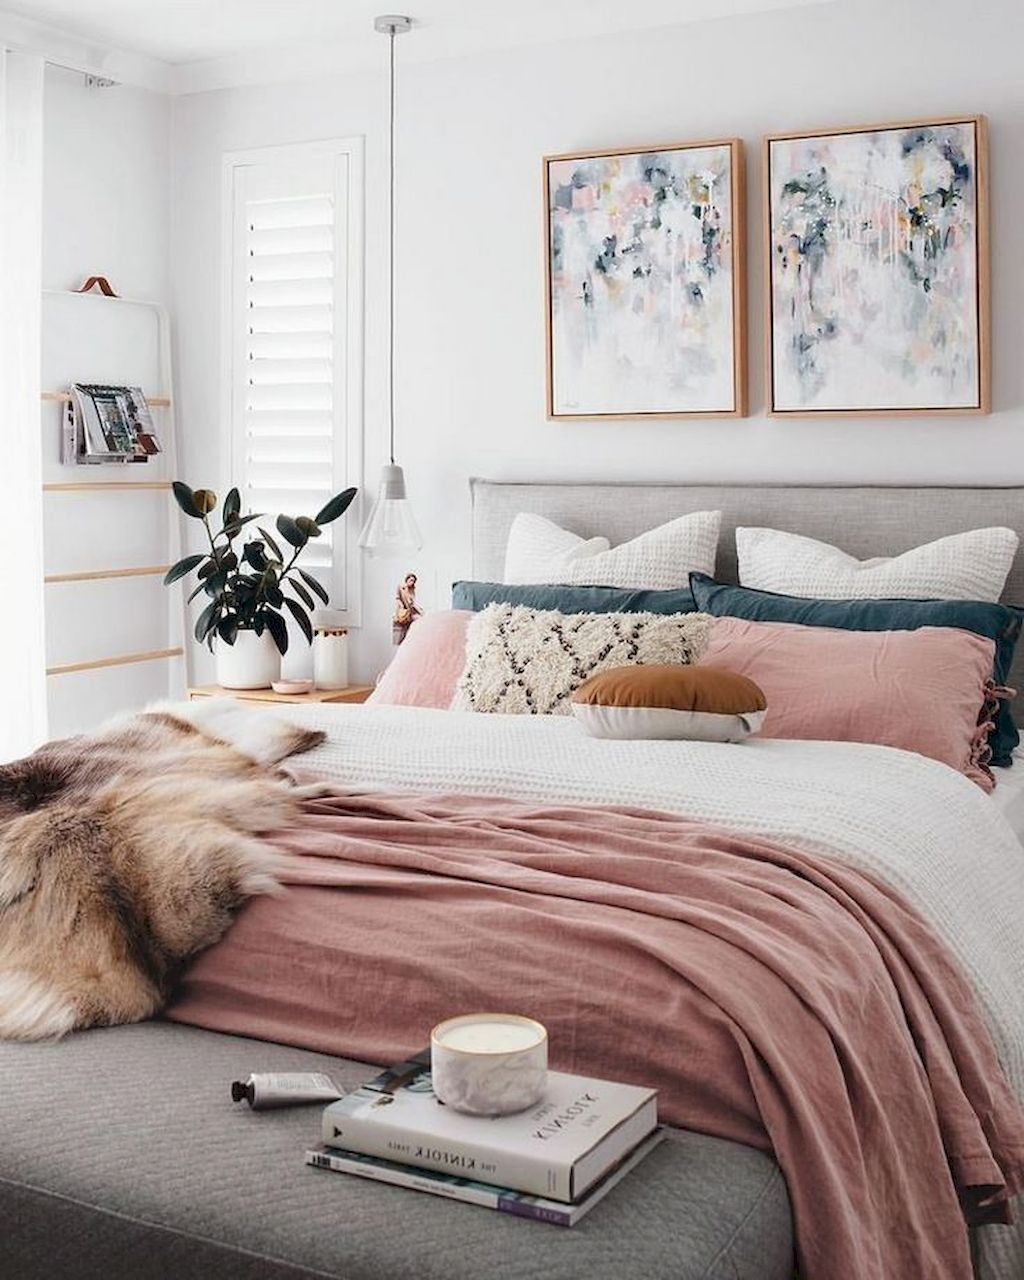 https://elonahome.com/wp-content/uploads/2018/12/Comfortable-Master-Bedroom-Concept-With-Affordable-Decoration-Part-15.jpg